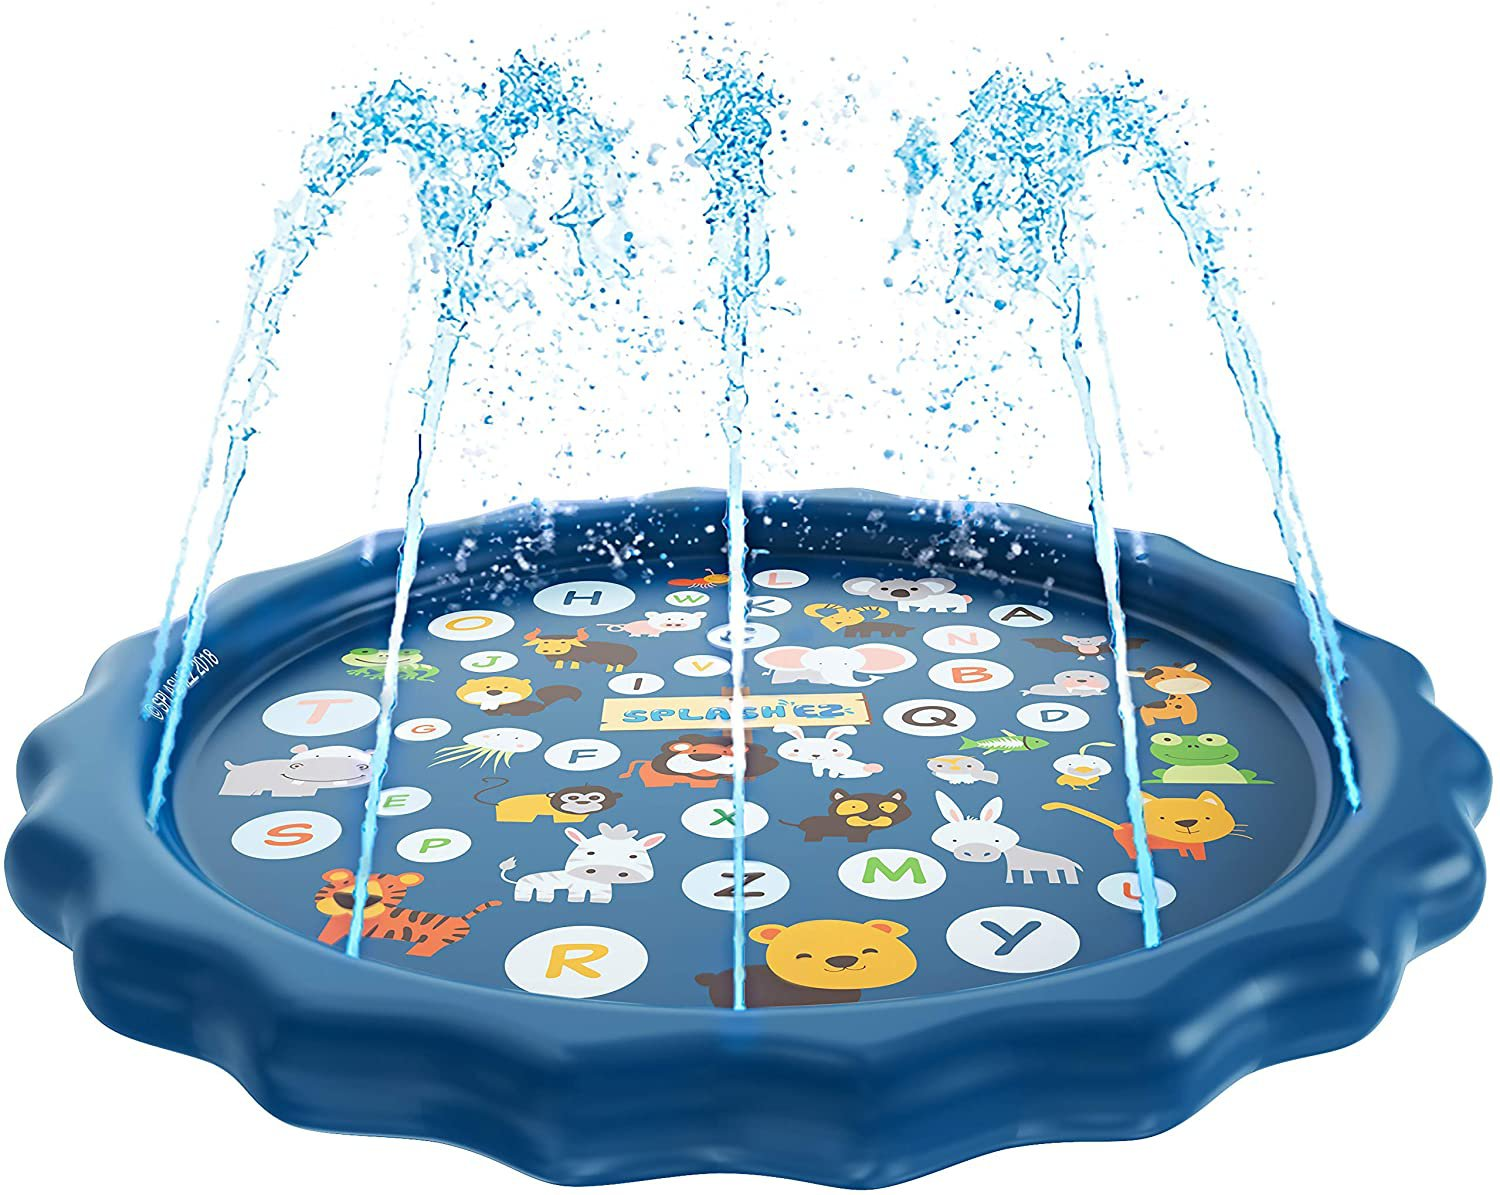 SplashEZ 3-in-1 Sprinkler for Kids, Splash Pad, and Wading Pool for Learning